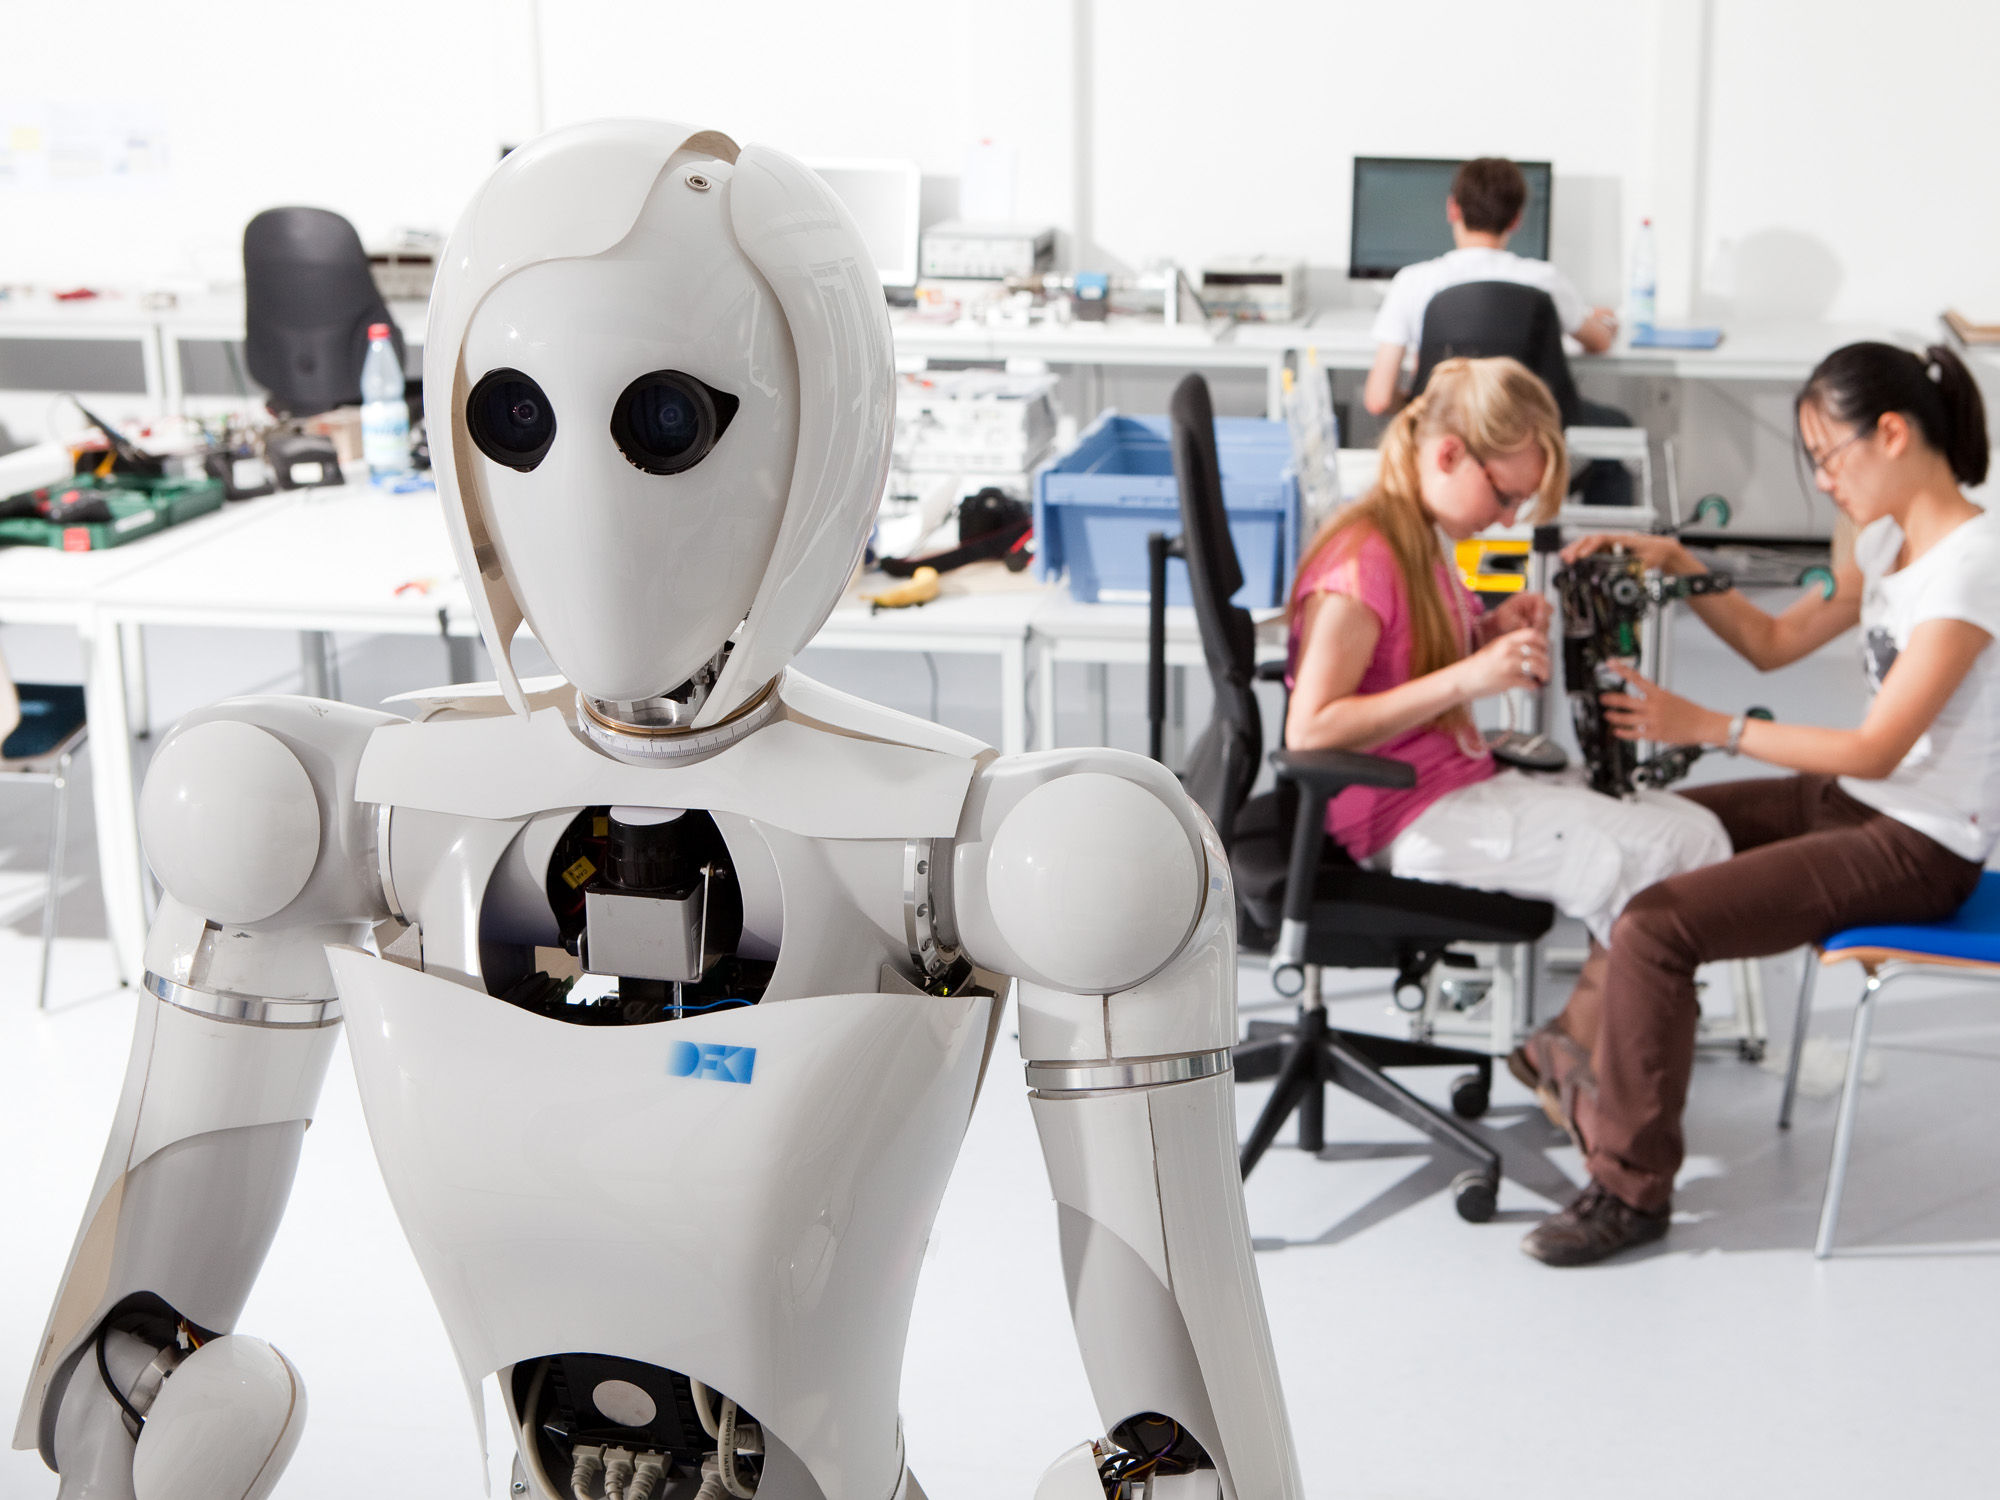 A humanoid robot in front of two people